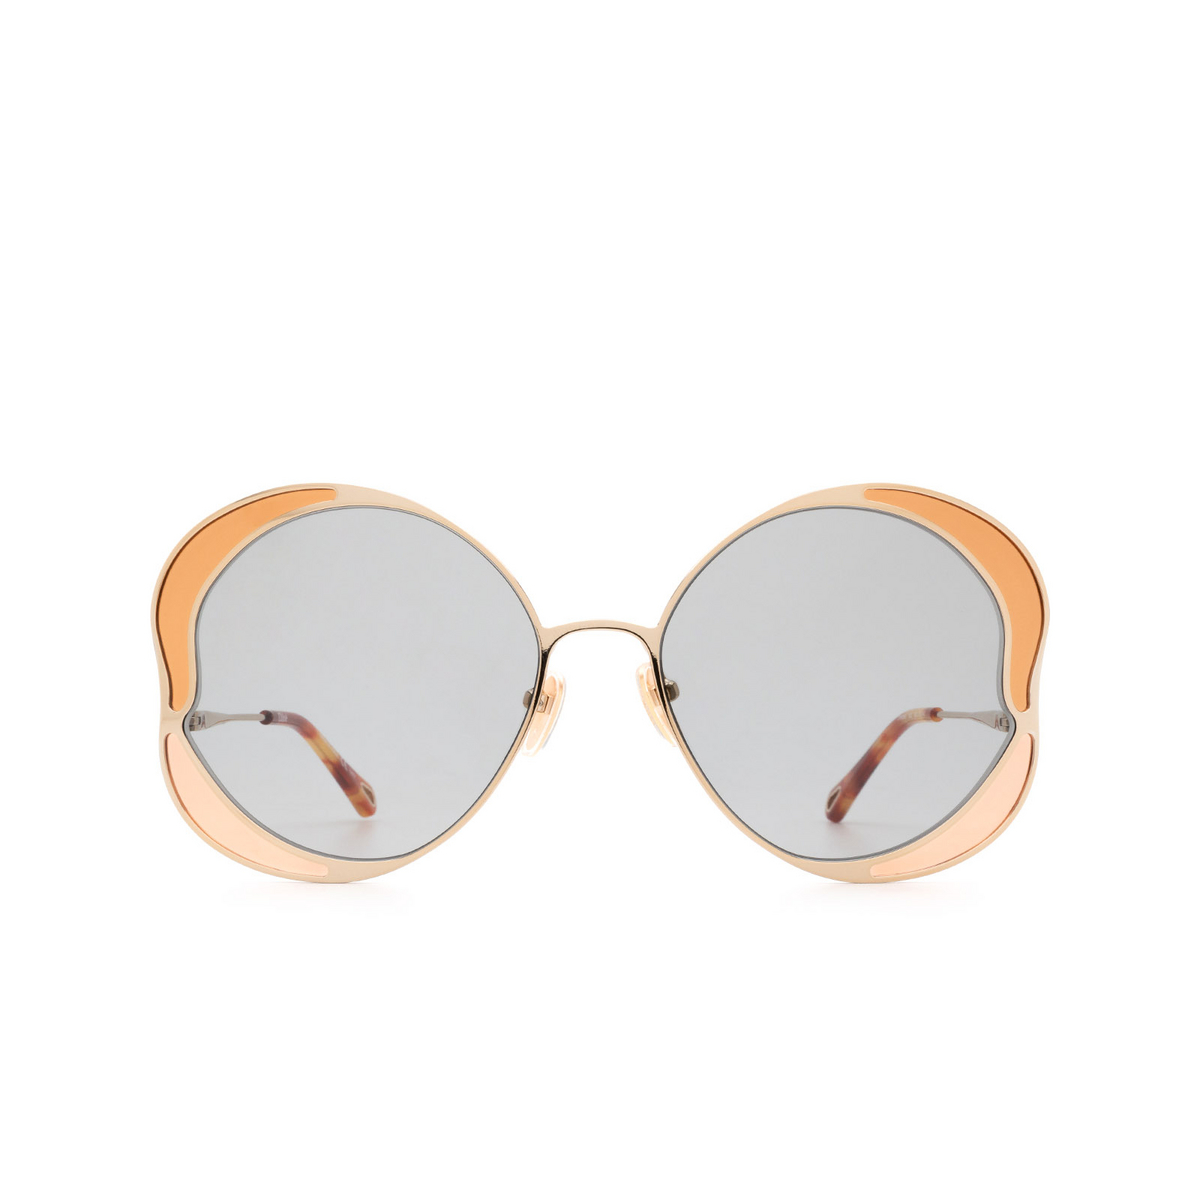 Chloé® Butterfly Sunglasses: CH0024S color Gold 002 - front view.